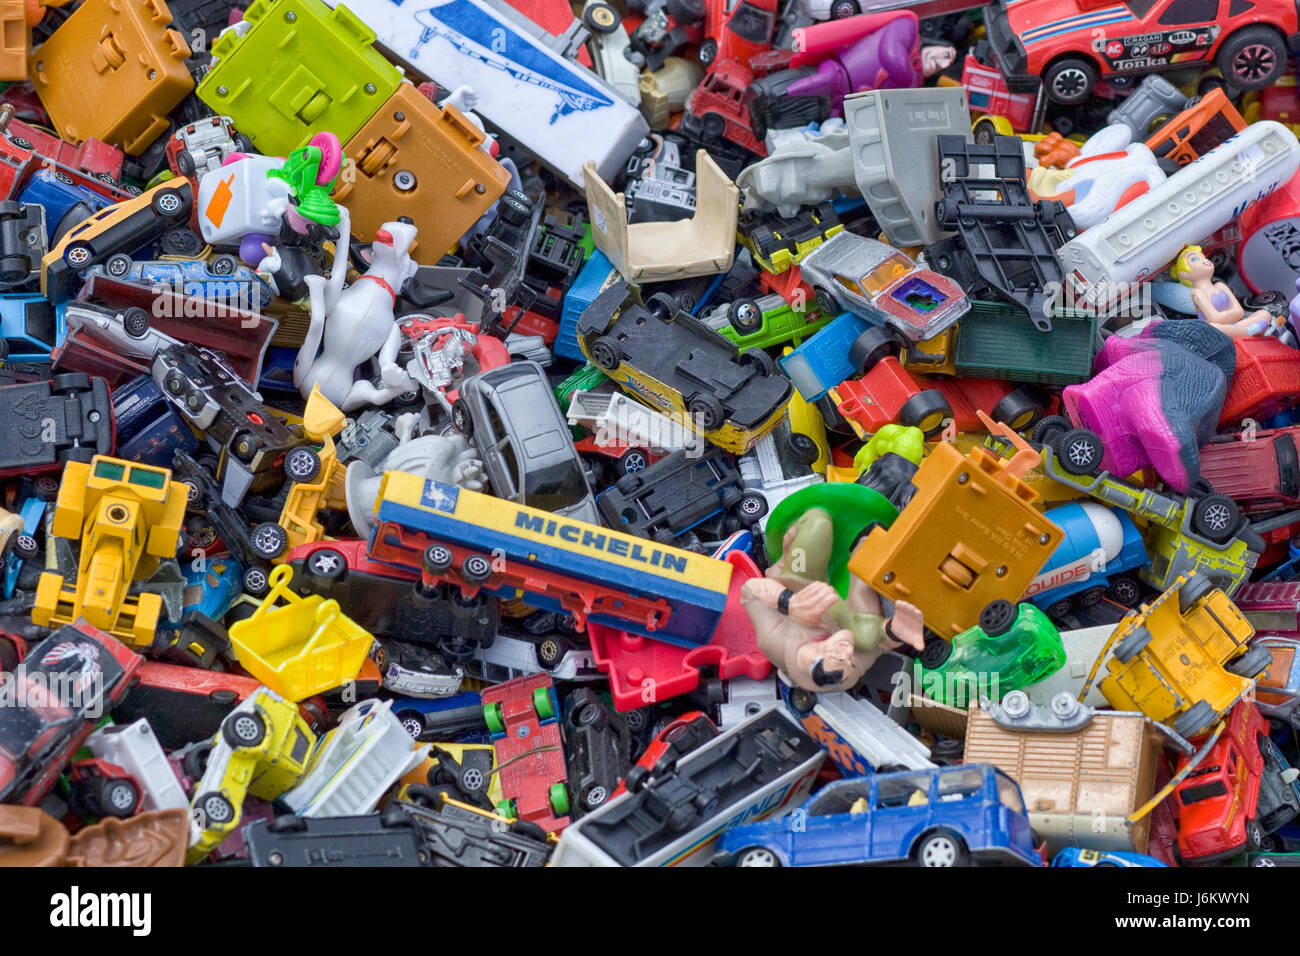 Toy cars and plastic toys in a toy box - Stock Image